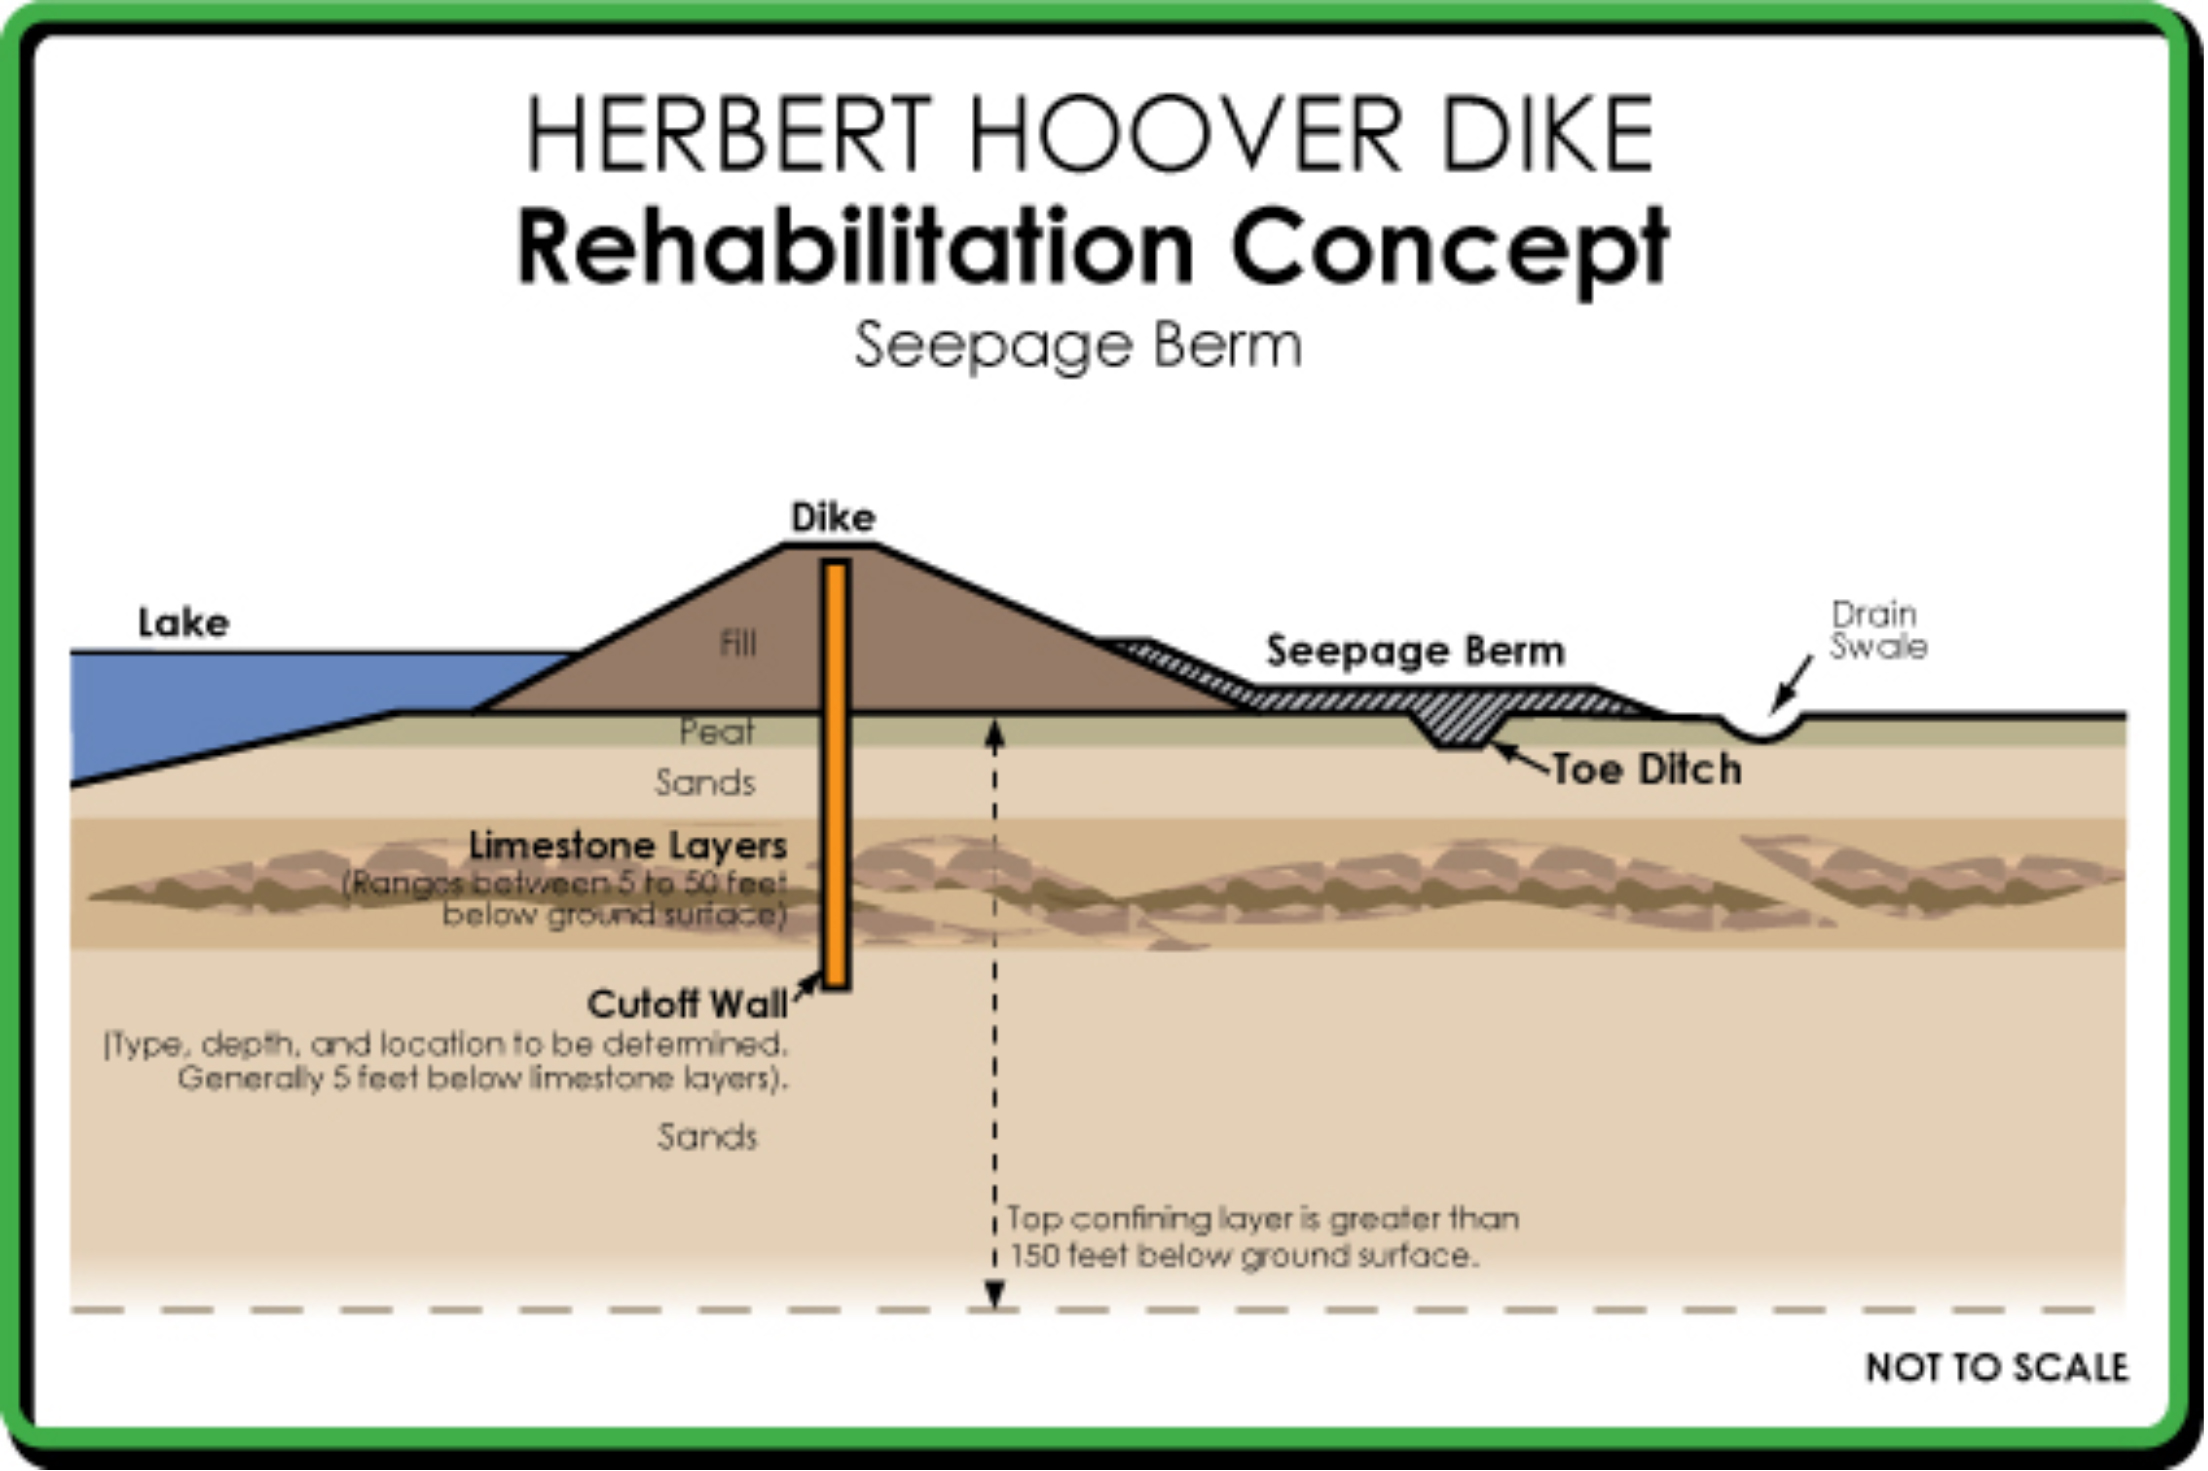 Herbert Hoover Dike cuttoff walls construction Trevi spa